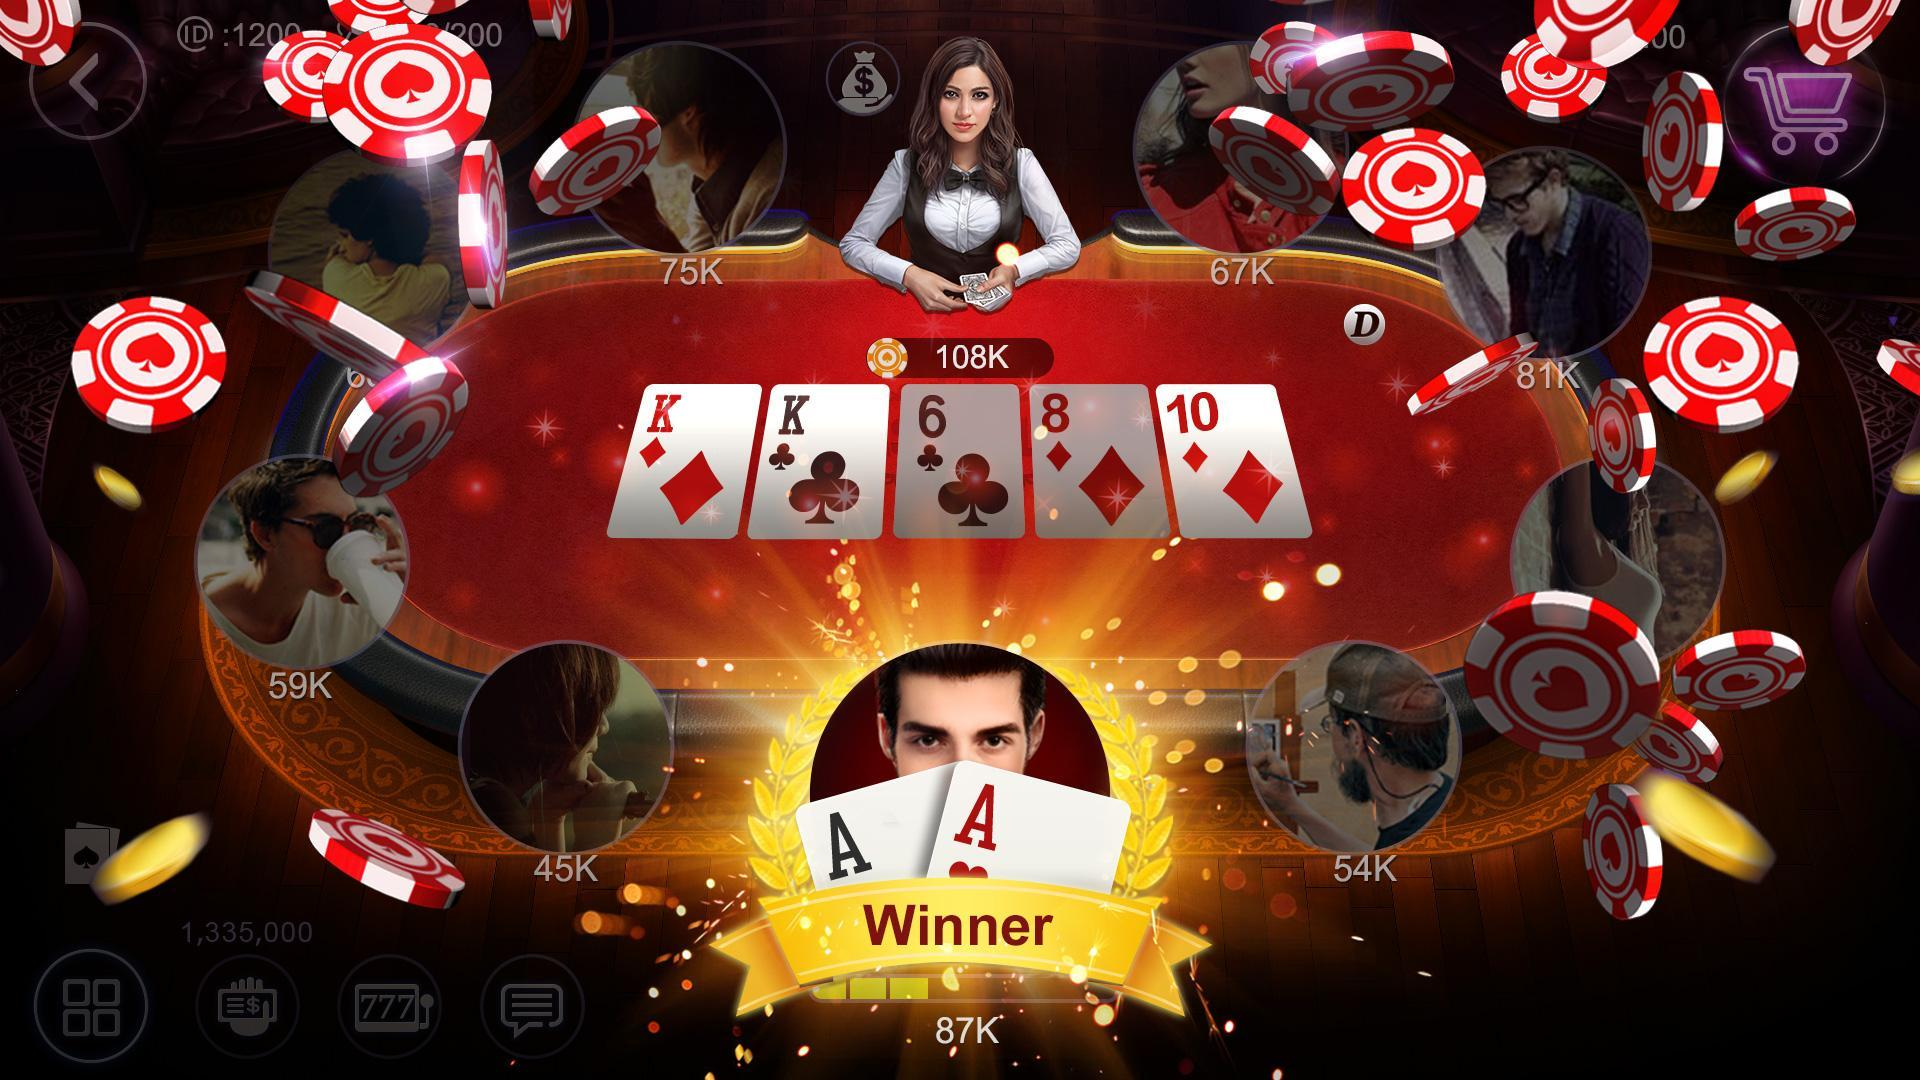 Rallyaces Poker For Android Apk Download